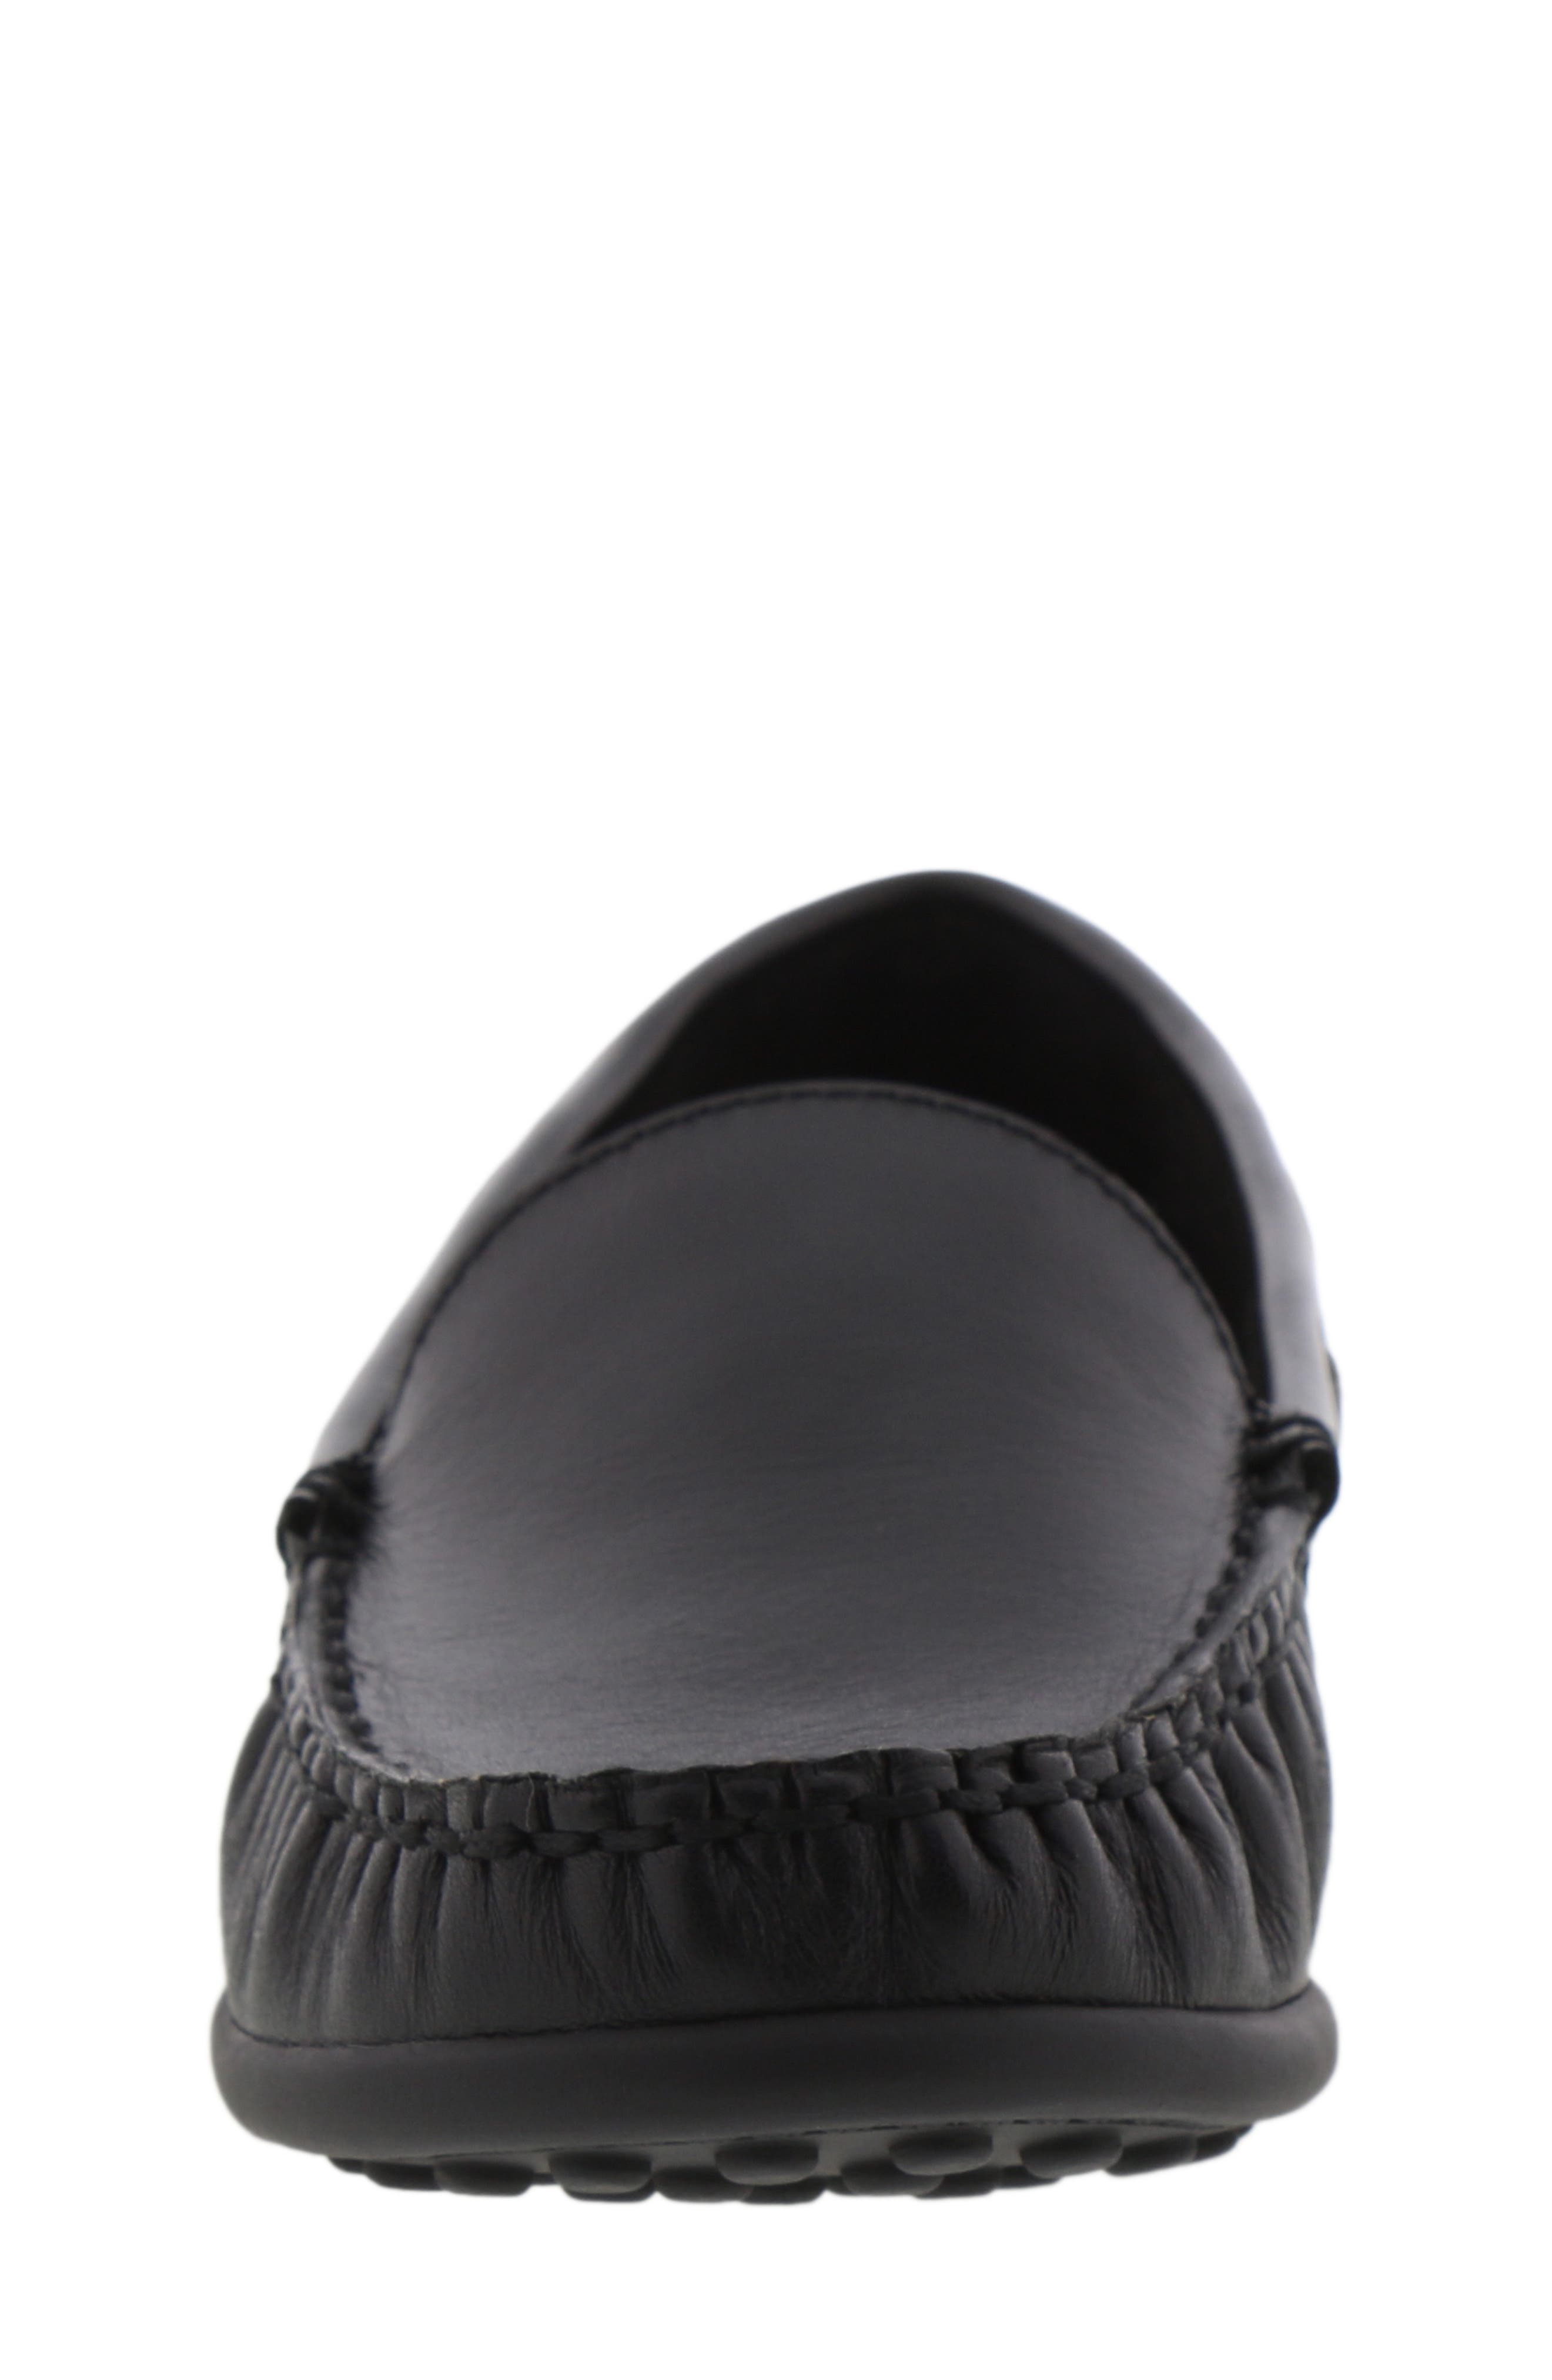 REACTION KENNETH COLE, Helio Shift Driving Moccasin, Alternate thumbnail 4, color, BLACK SMOOTH